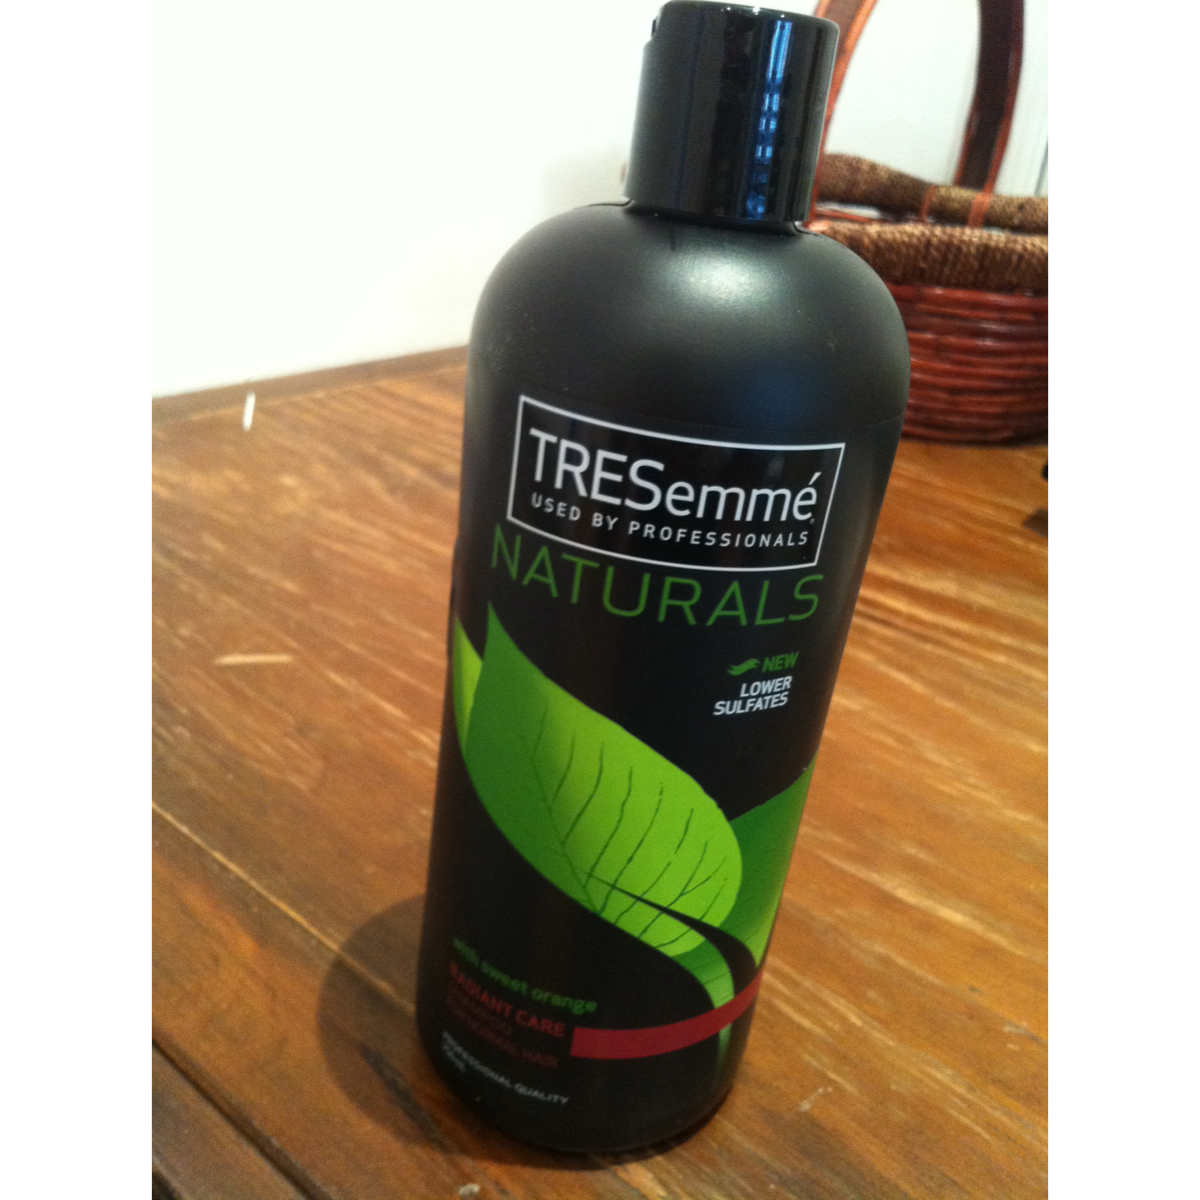 Tresemme Naturals Radiant Care Shampoo